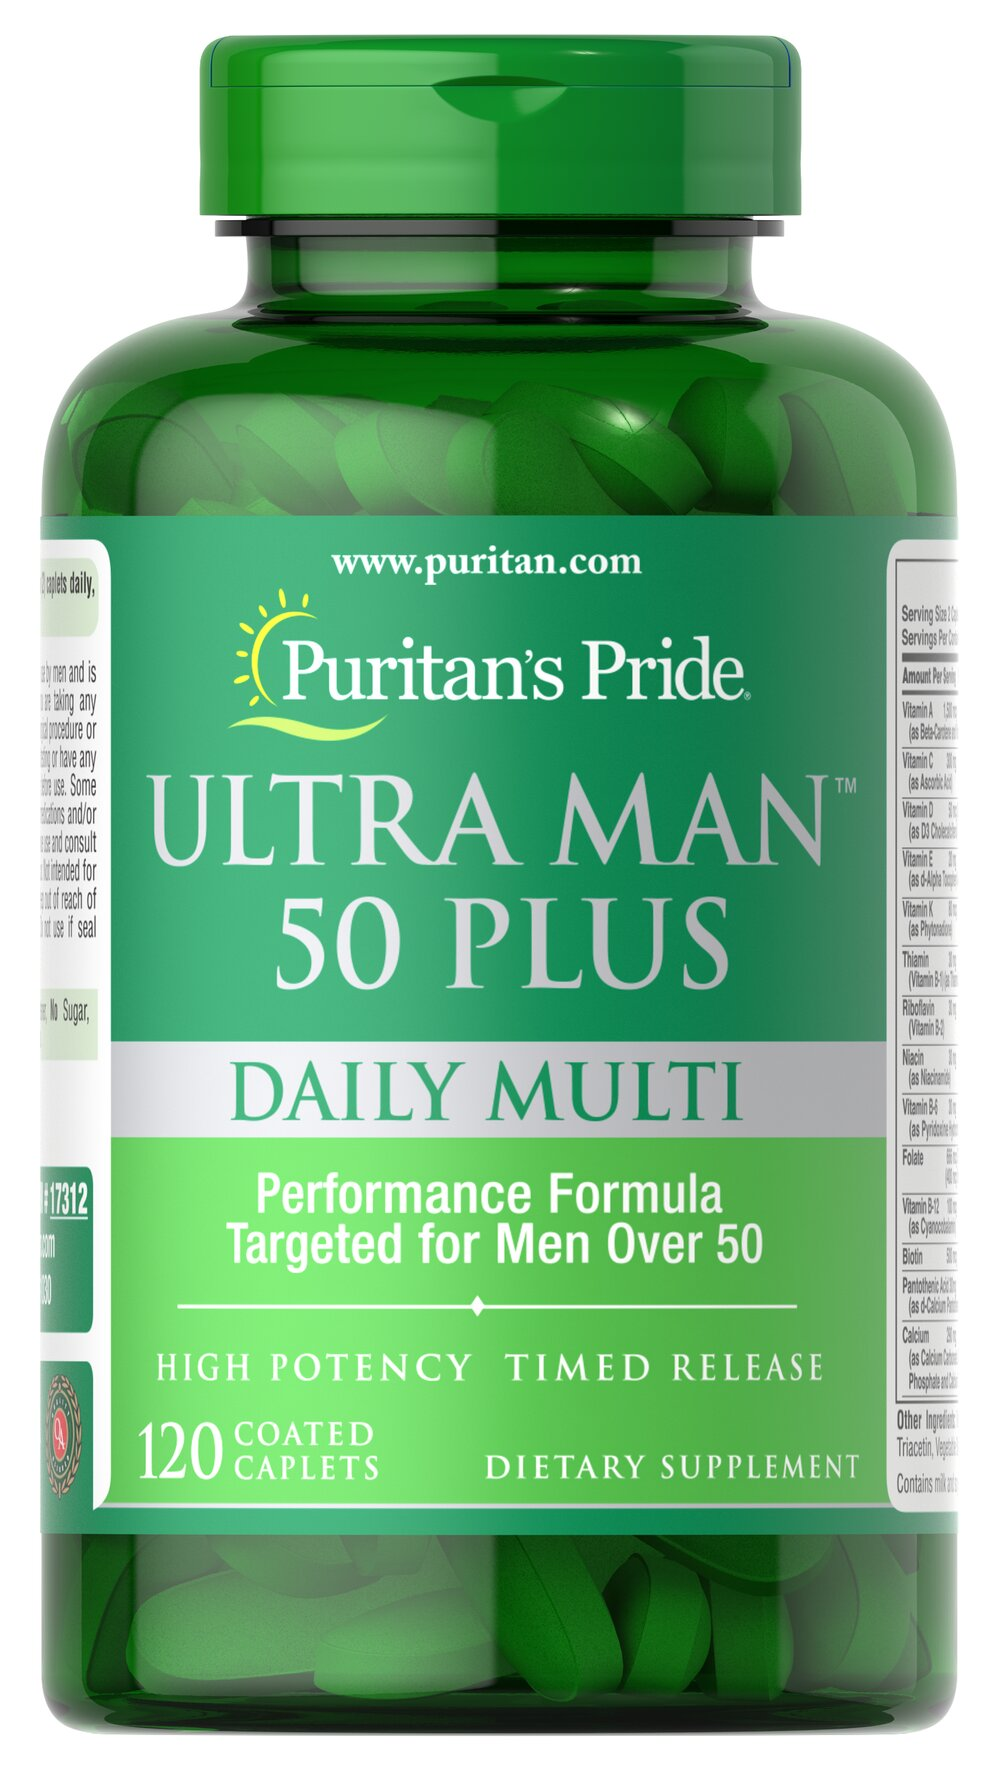 Ultra Vita Man™ 50 Plus • High performance multi with over 50 important nutrients for men's health**<br />• Created especially for men over 50<br />• Just two coated caplets a day<br />• Helps improve memory, especially occasional mild memory problems associated with aging**<br />• Features Zinc, an important mineral that contributes to normal semen production and sexual health** 120 Caplets  $31.99